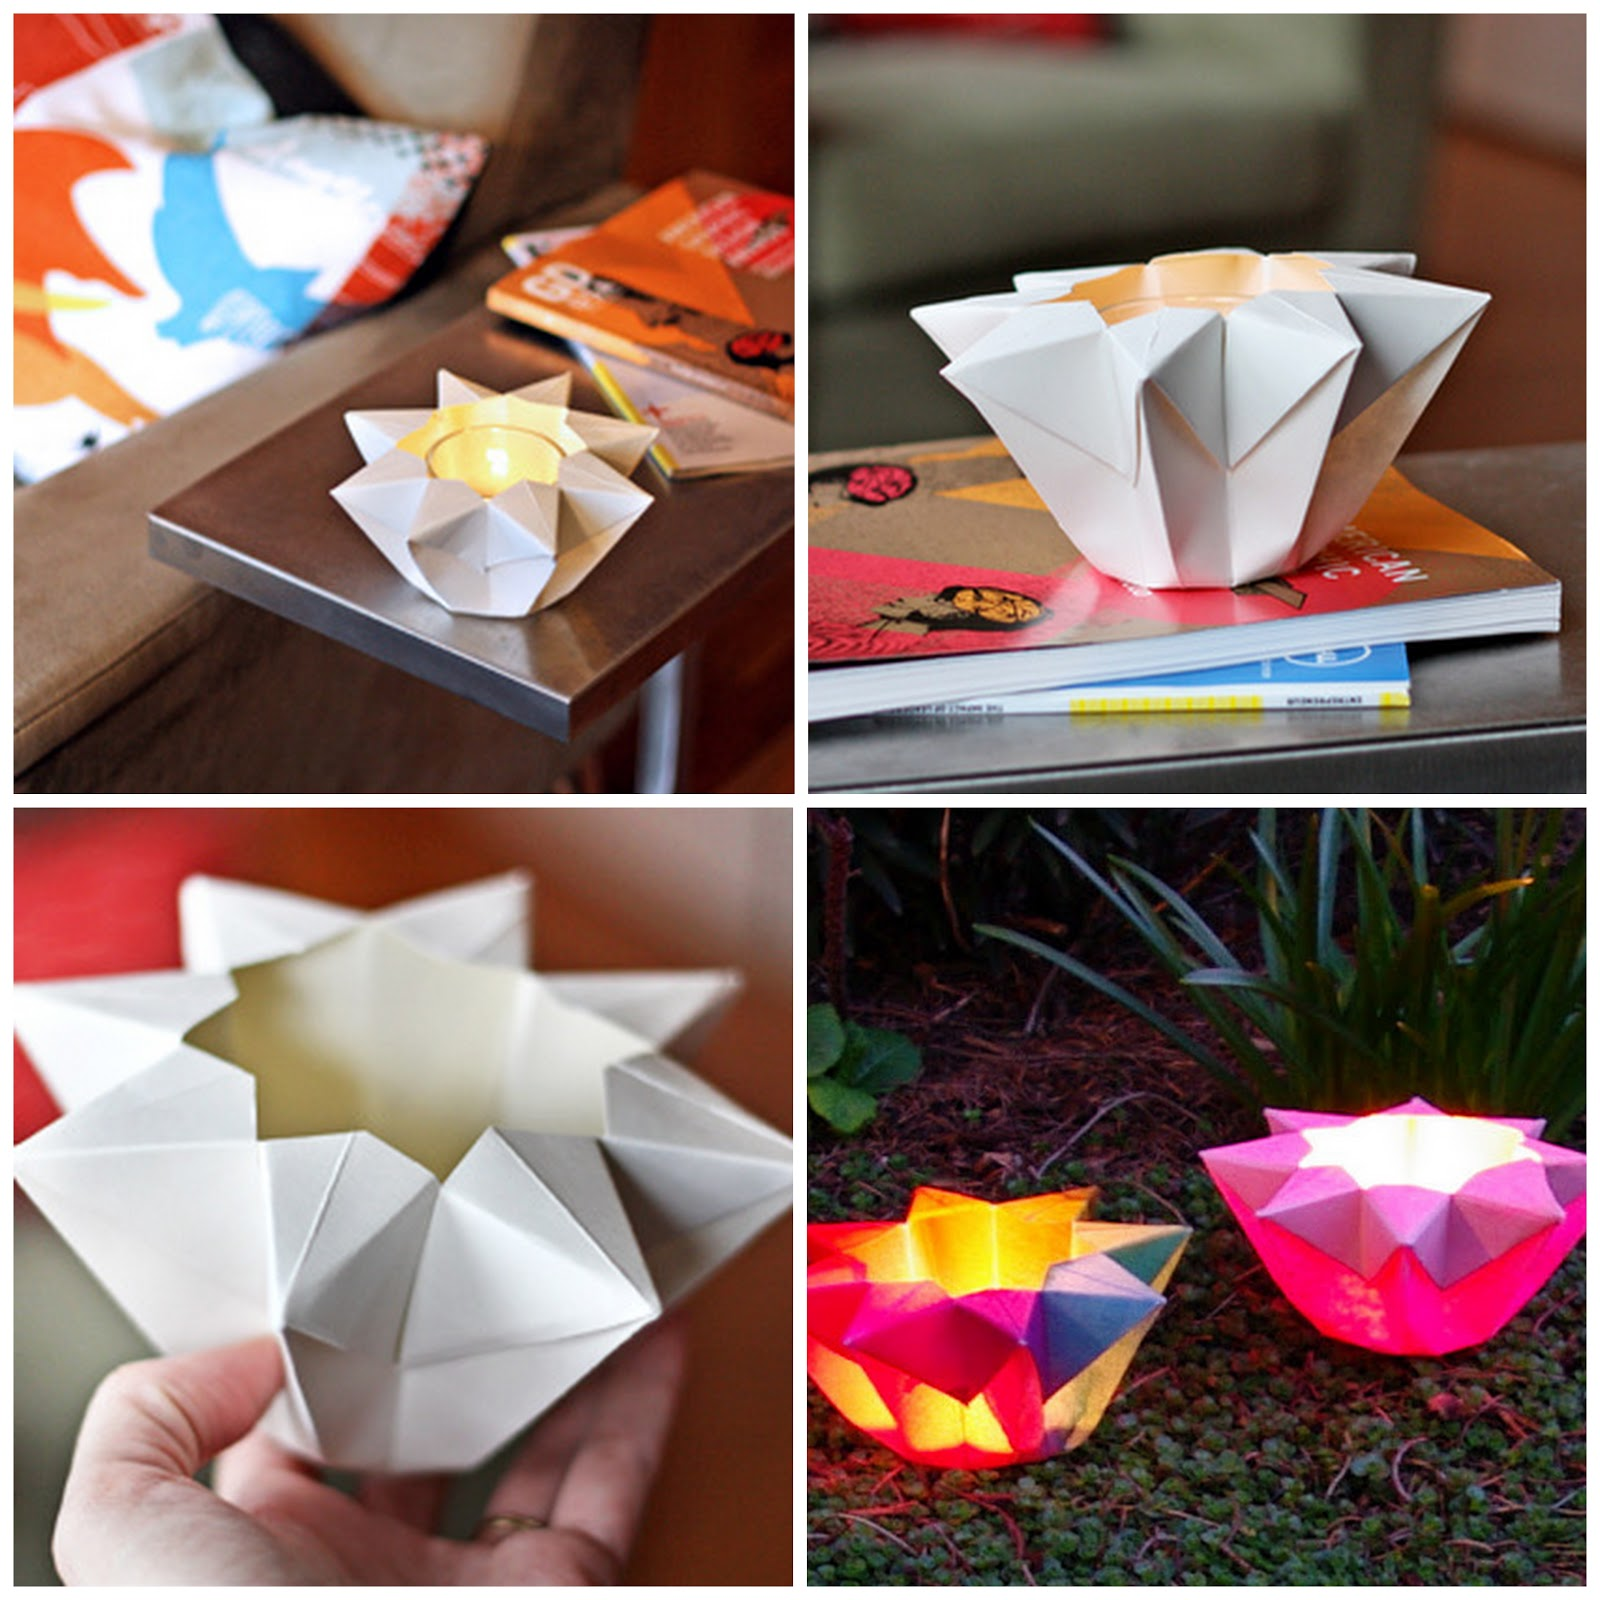 Photo credits how about orange passengers on a little for Diy star lantern